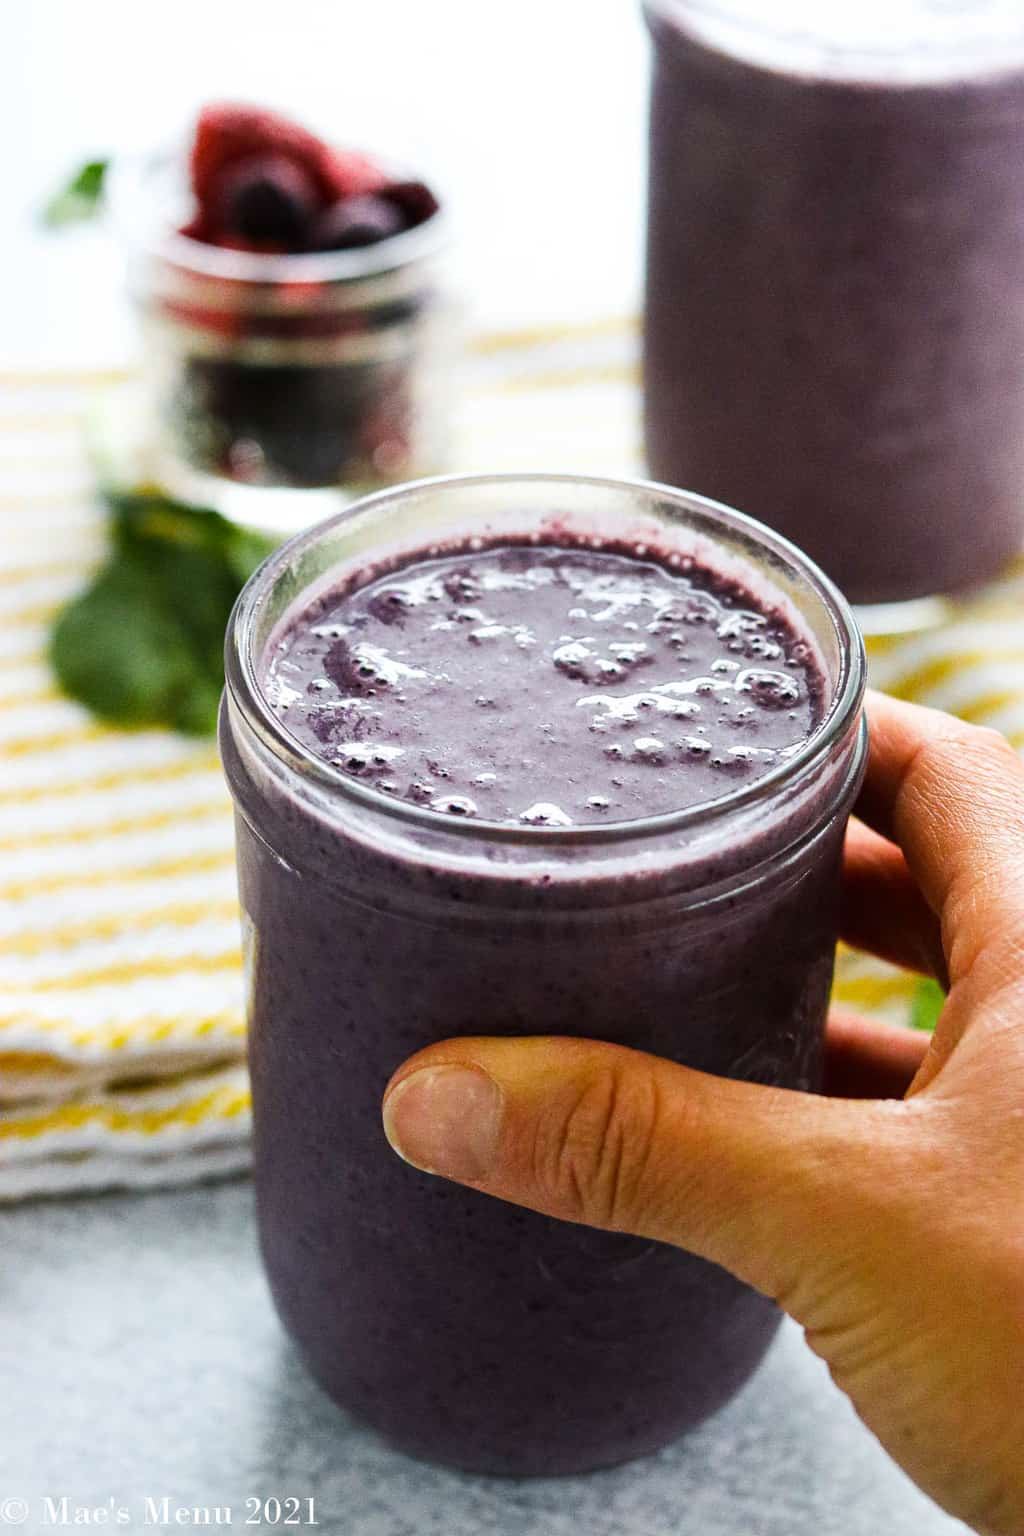 A hand holding a cup of blueberry spinach smoothie